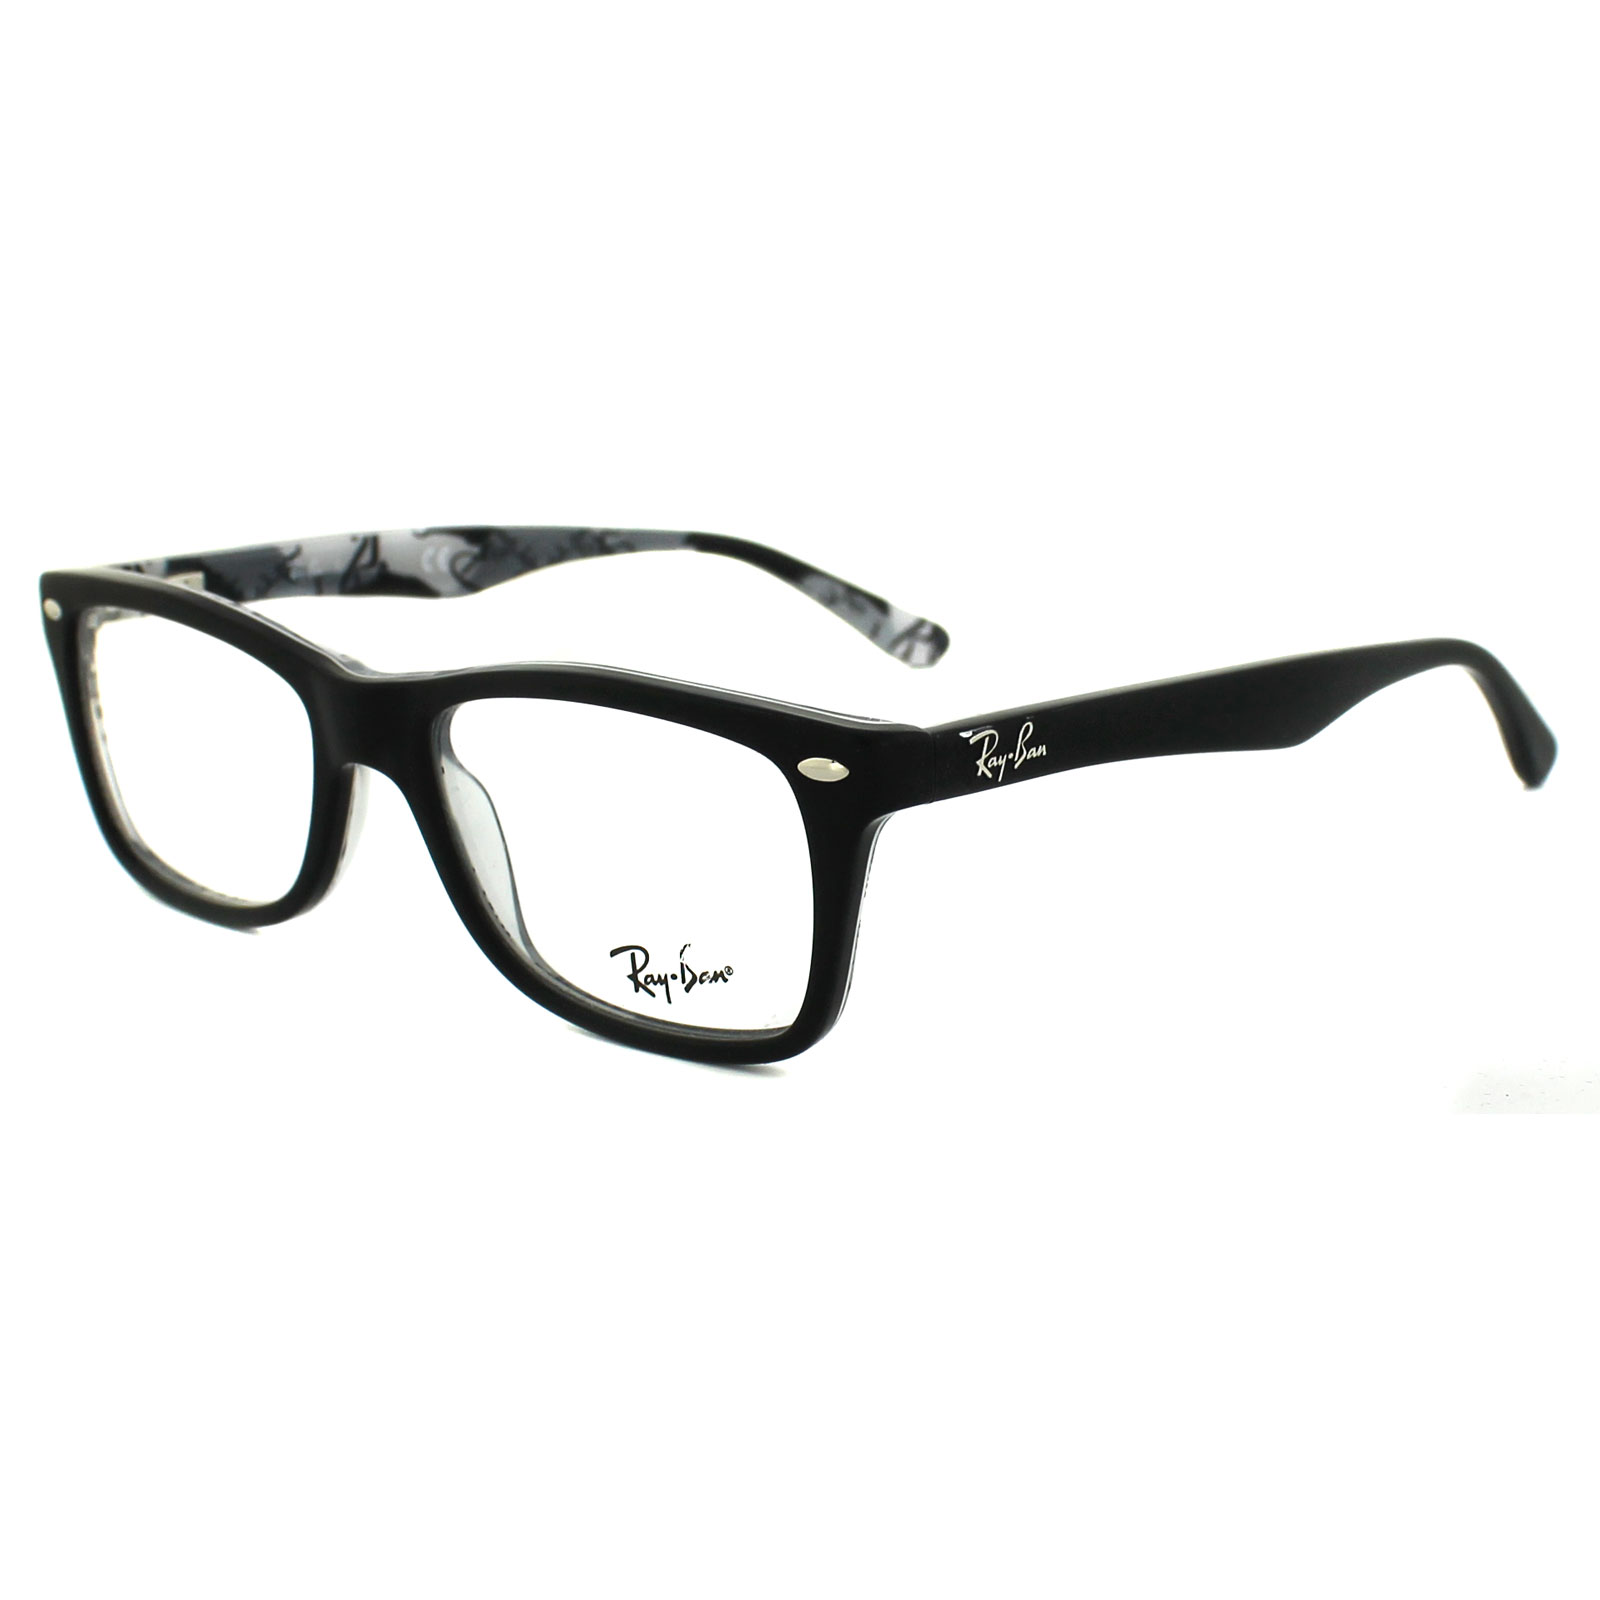 aac04d9a620c Ray Ban Glasses Ebay Uk